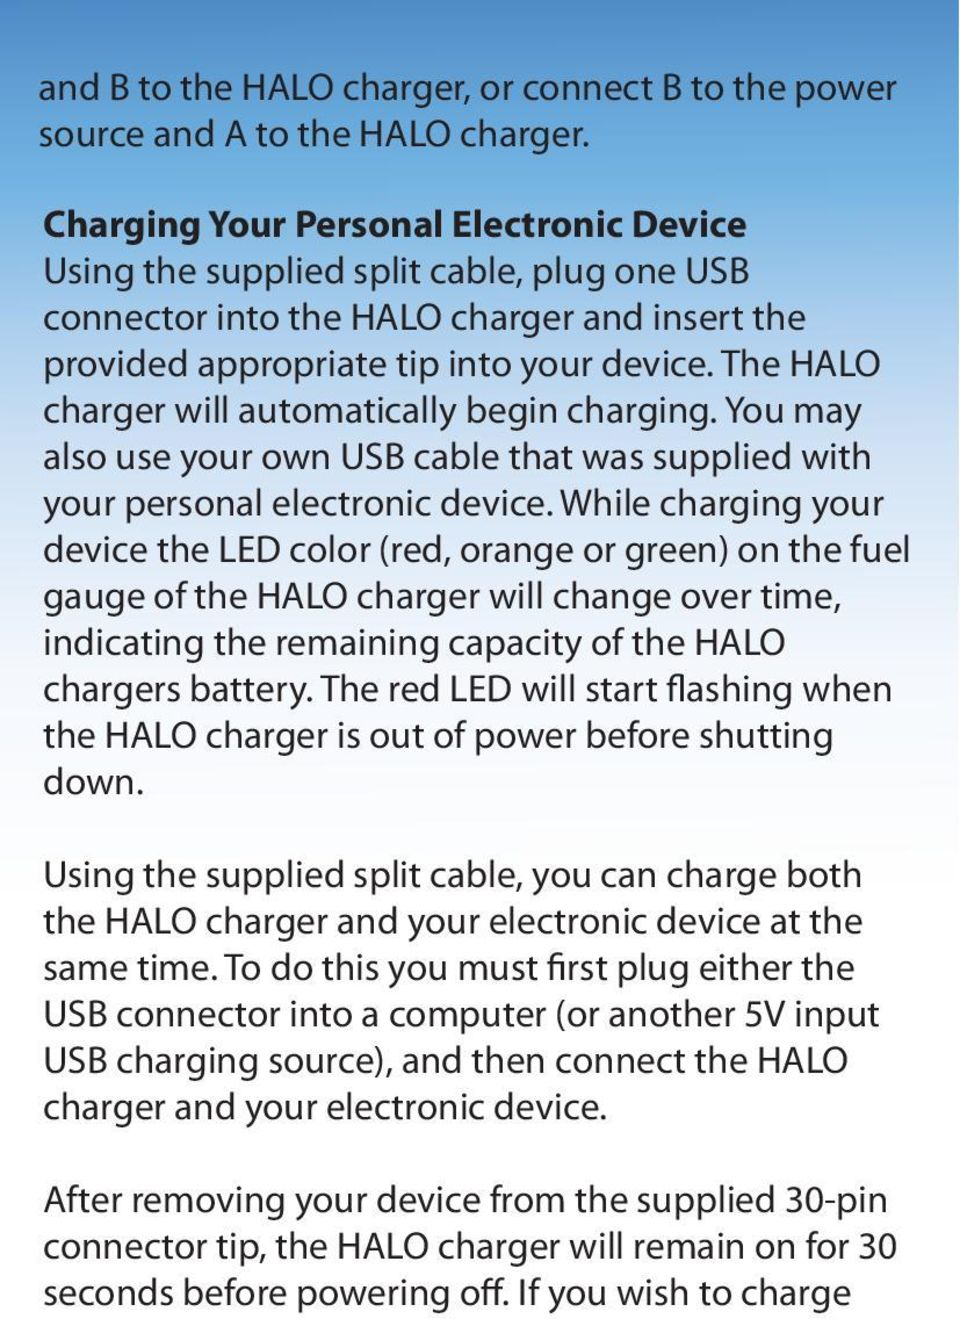 The HALO charger will automatically begin charging. You may also use your own USB cable that was supplied with your personal electronic device.